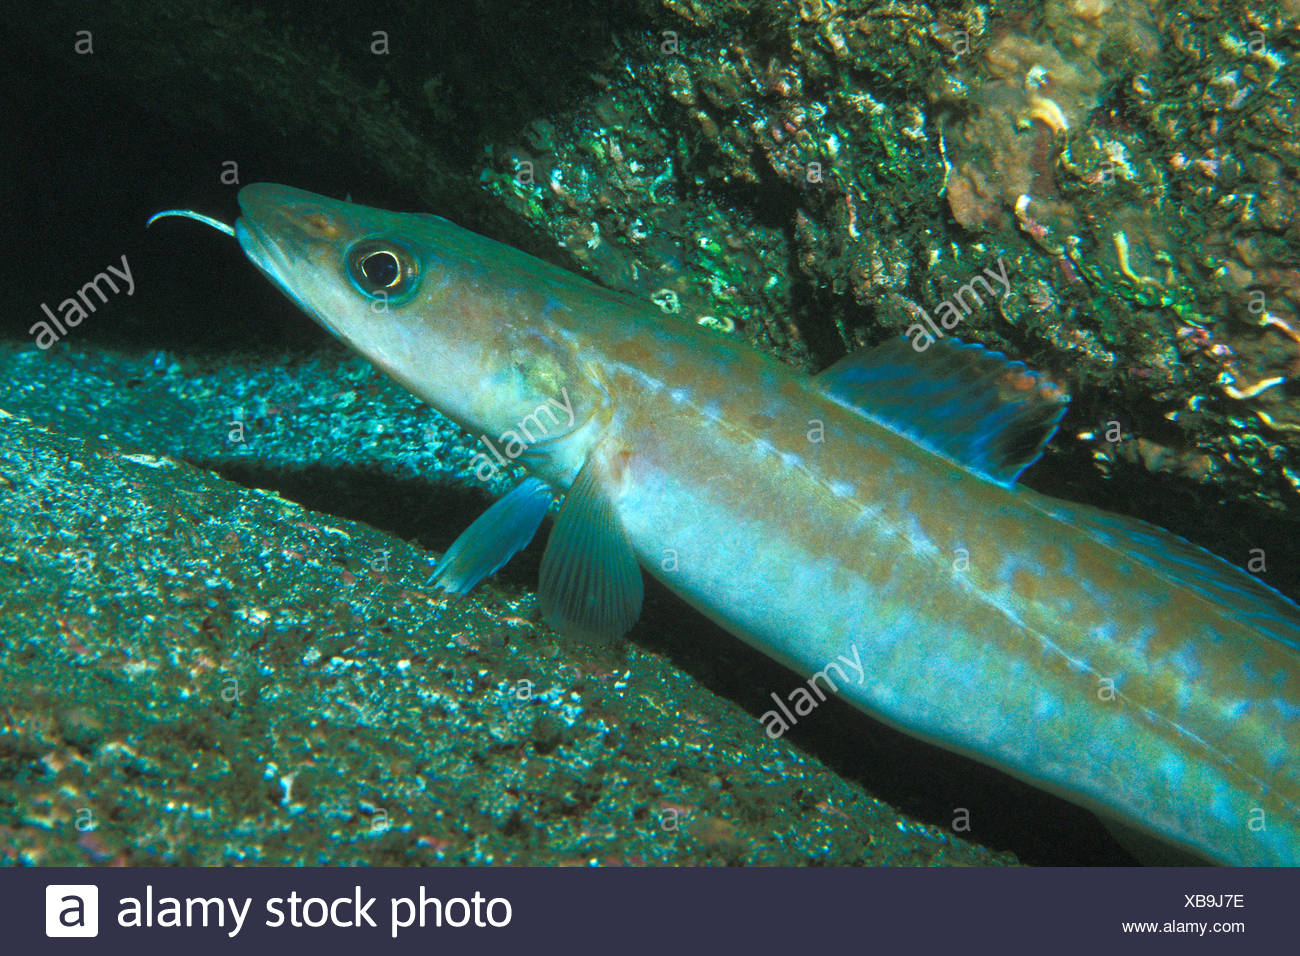 Ling Cod Stock Photos & Ling Cod Stock Images - Alamy